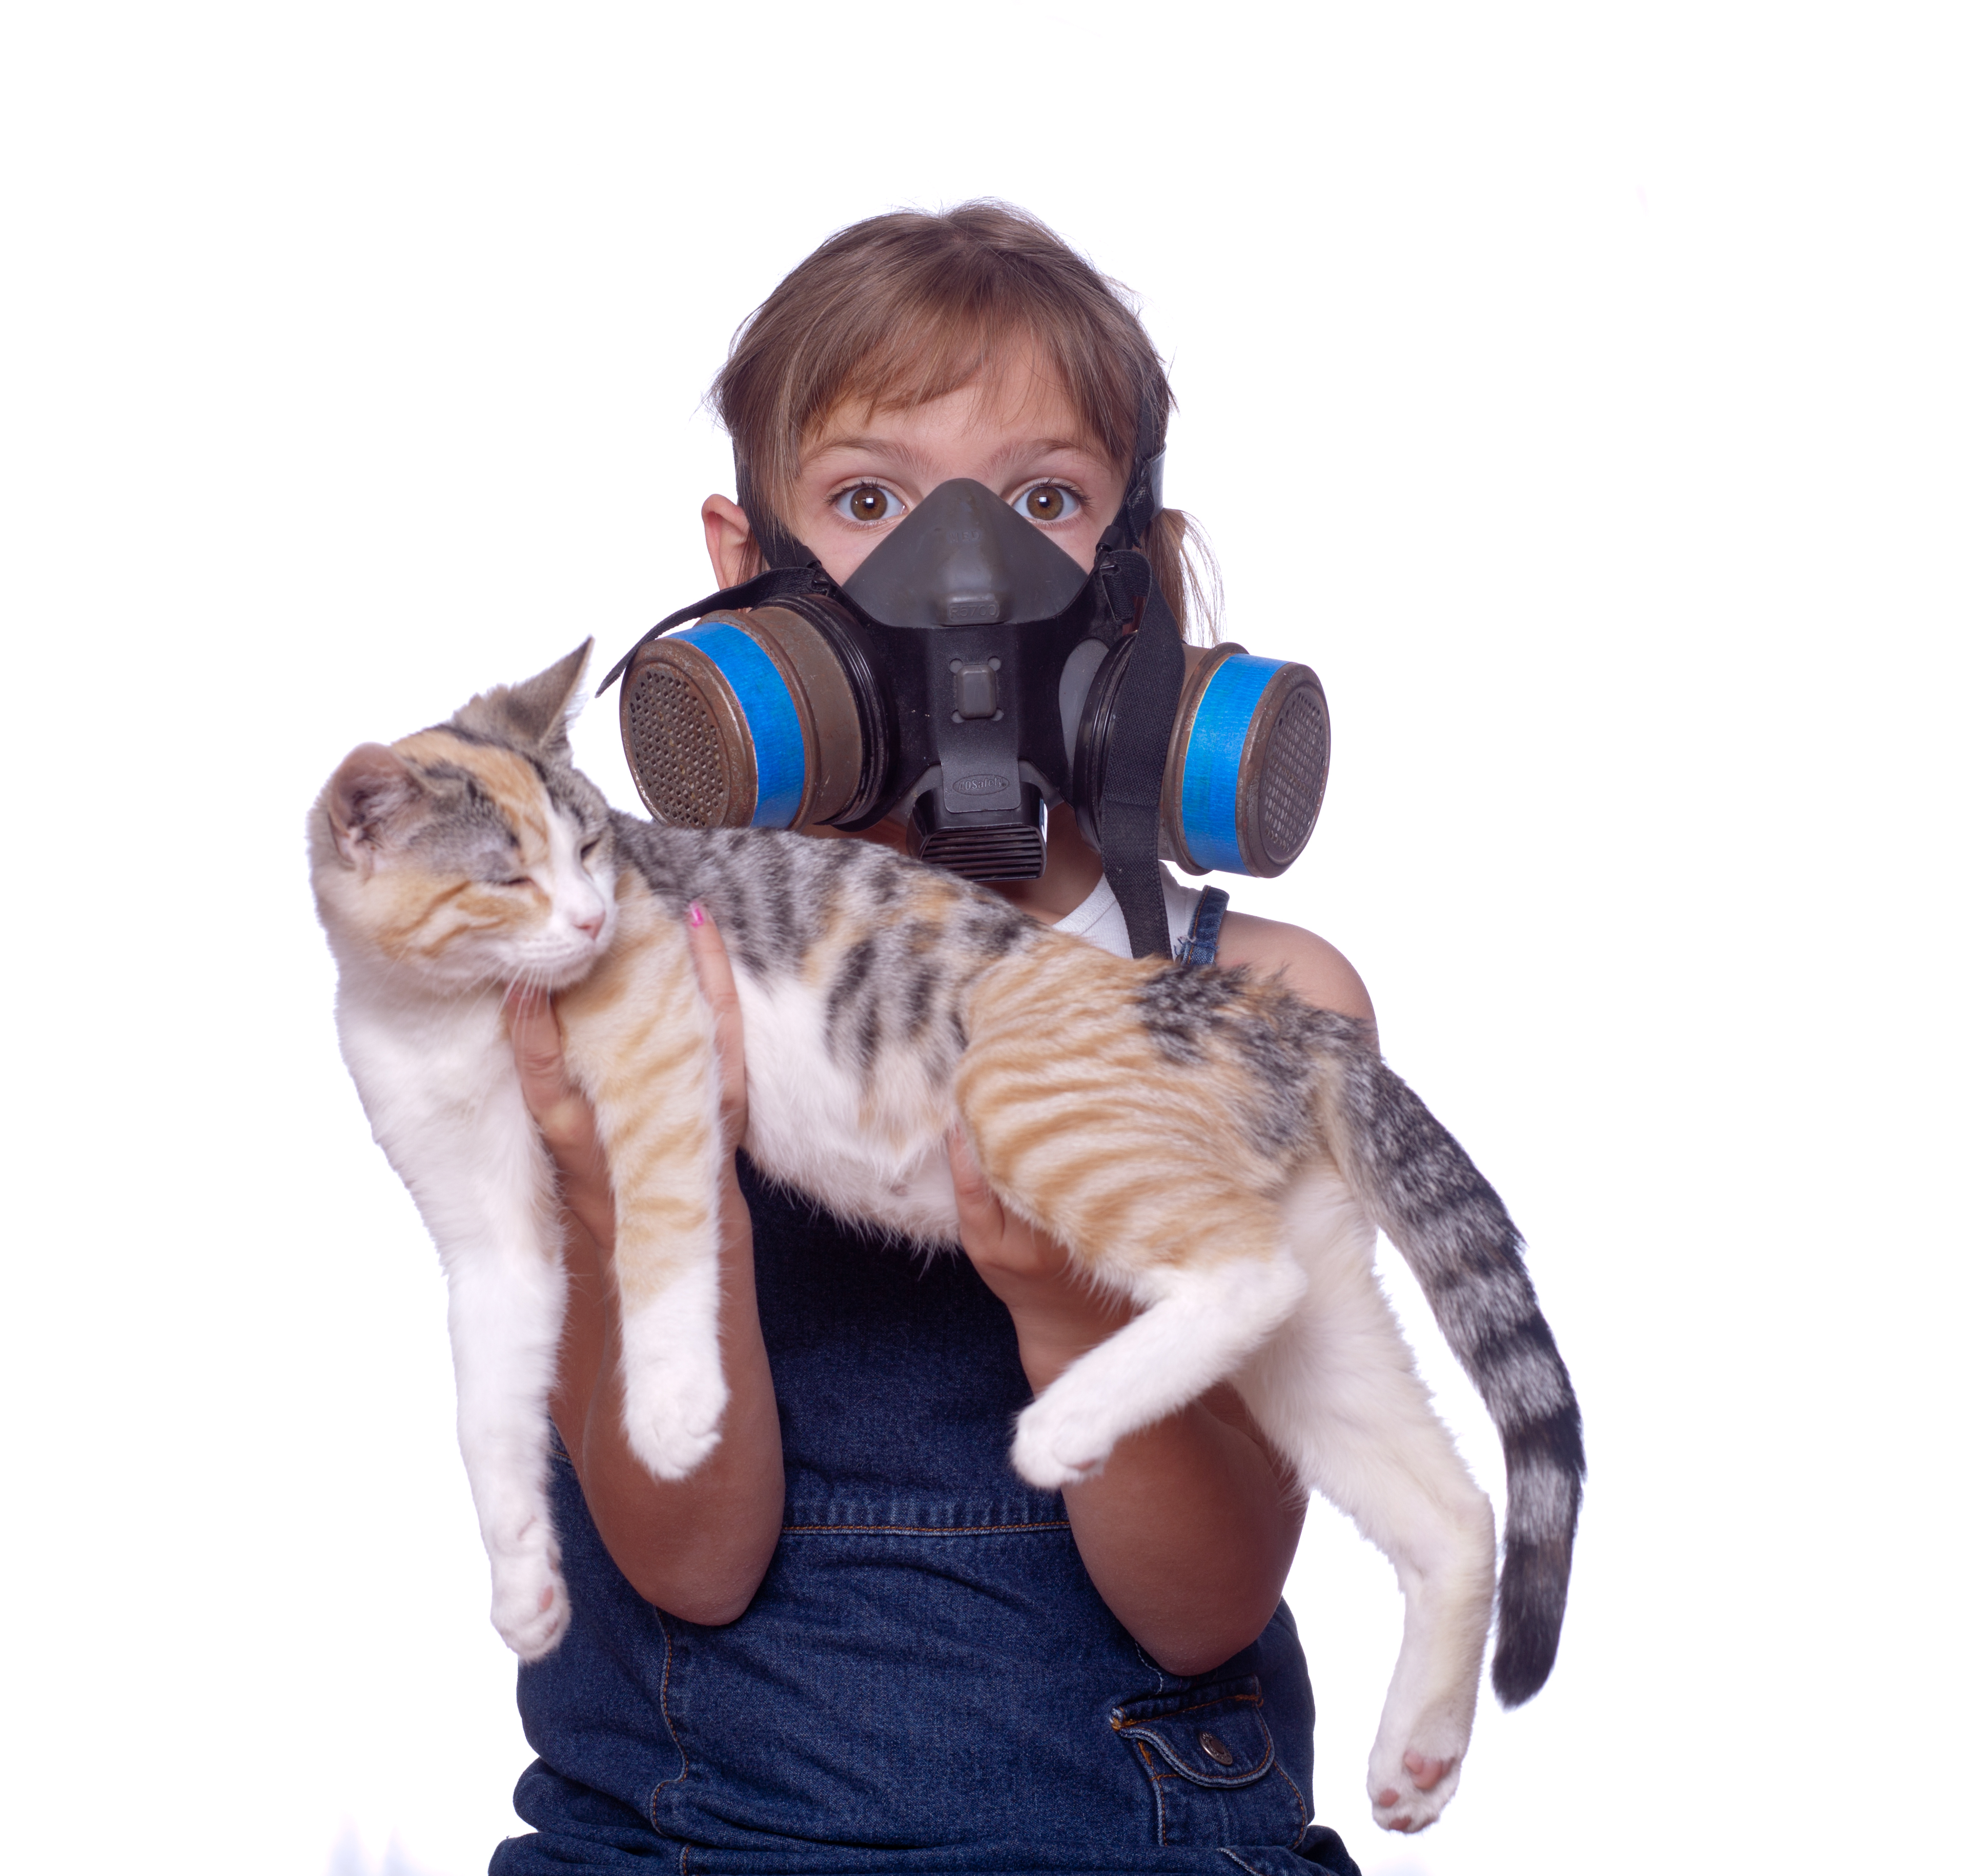 Air Quality inspections are vital to your family